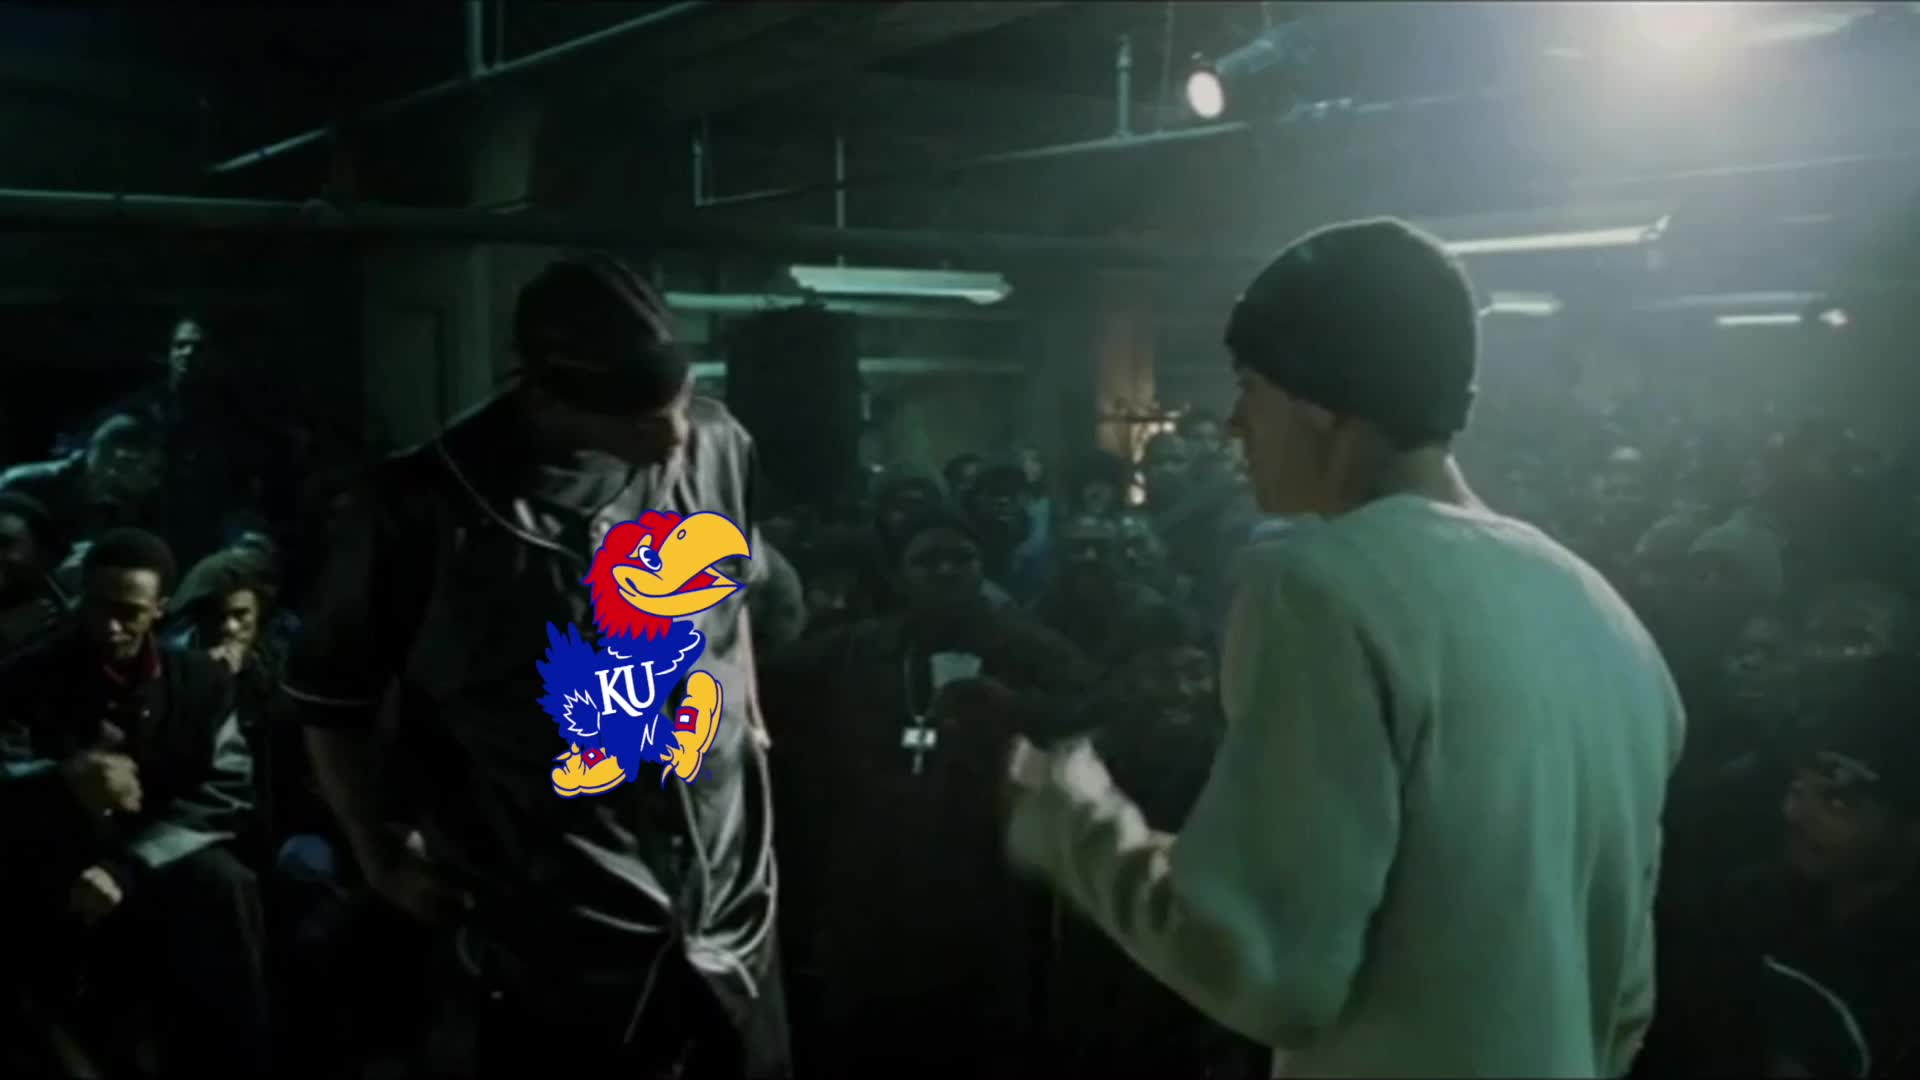 8 mile, College Basketball, gif war, rap battle, Thirsty for more? GIFs